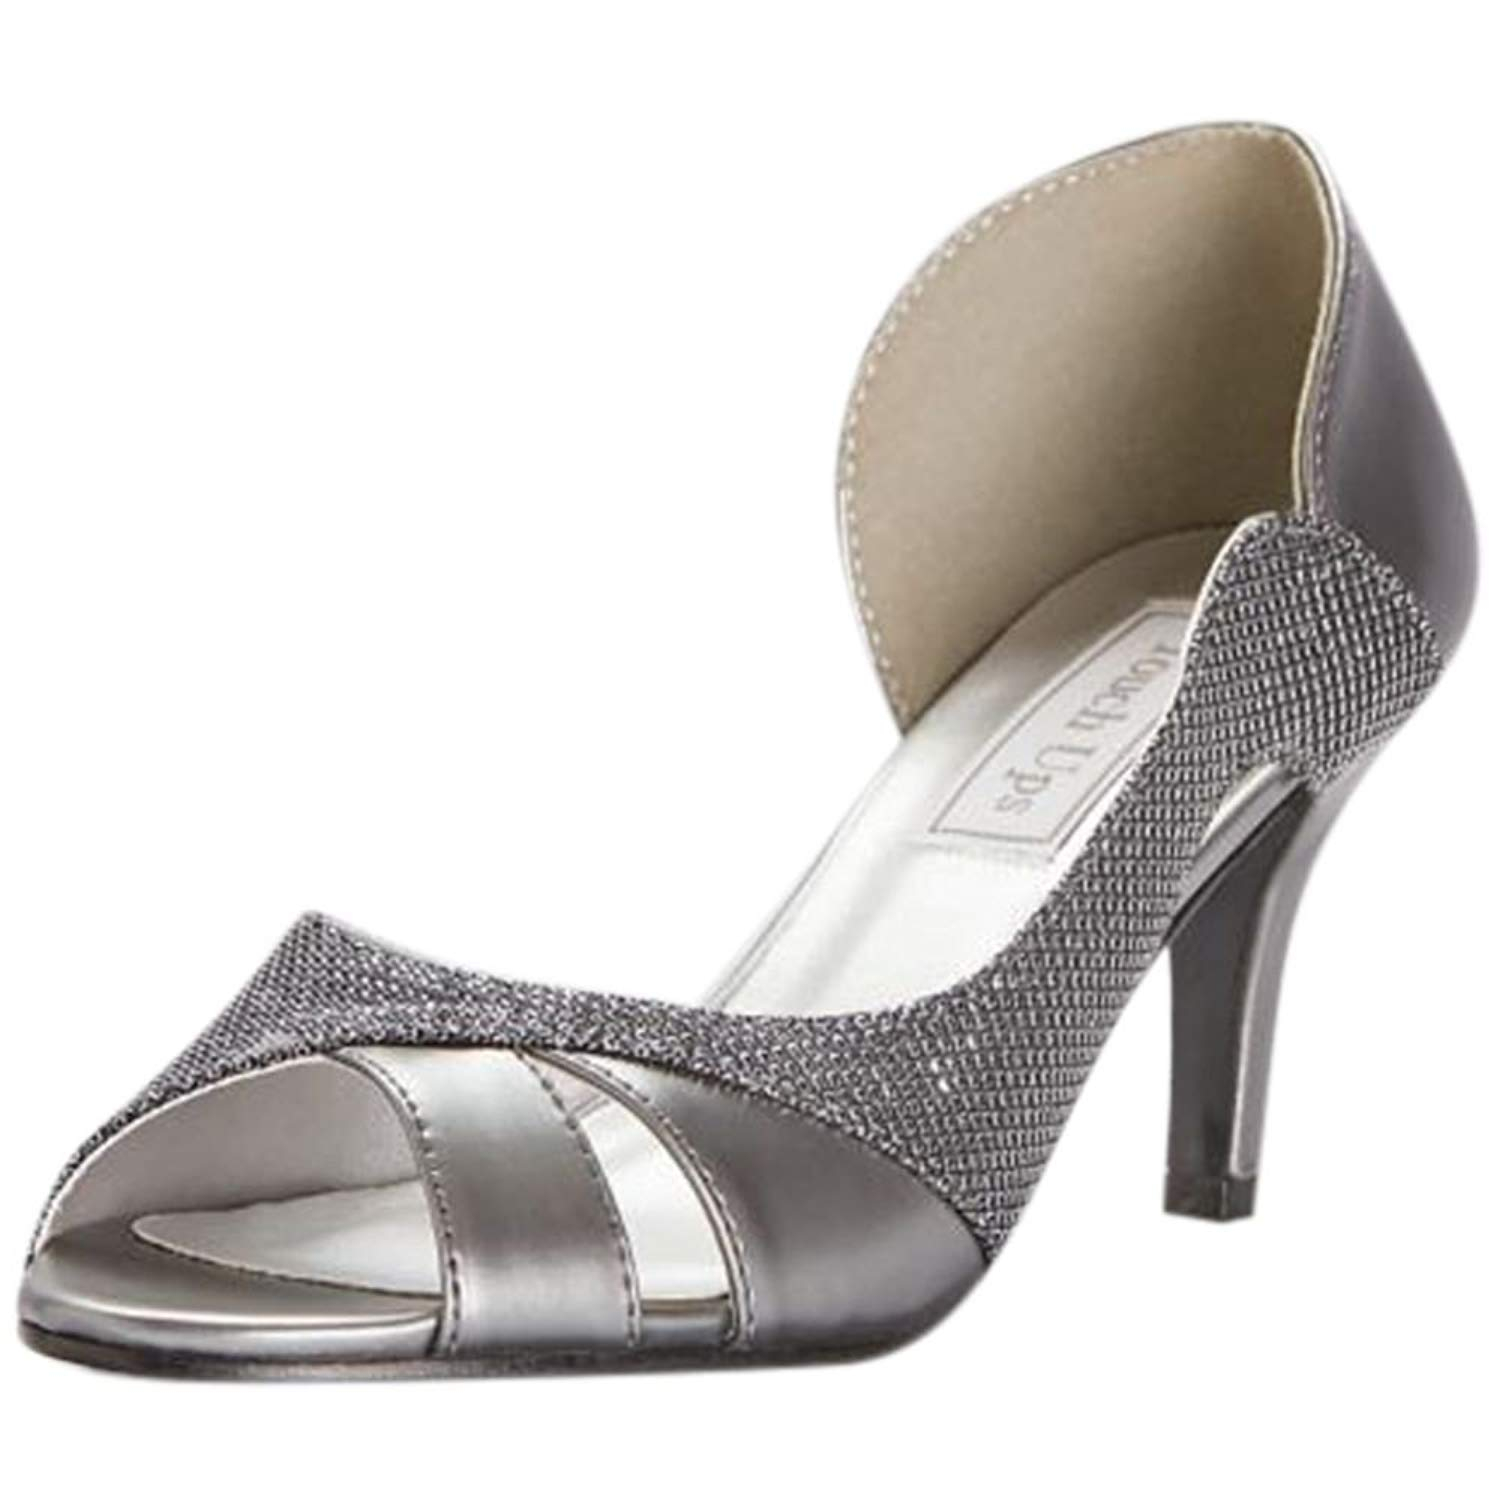 687f73543ef Get Quotations · David s Bridal Metallic D Orsay Heels with Metallic Fabric  Inset Style Charlie